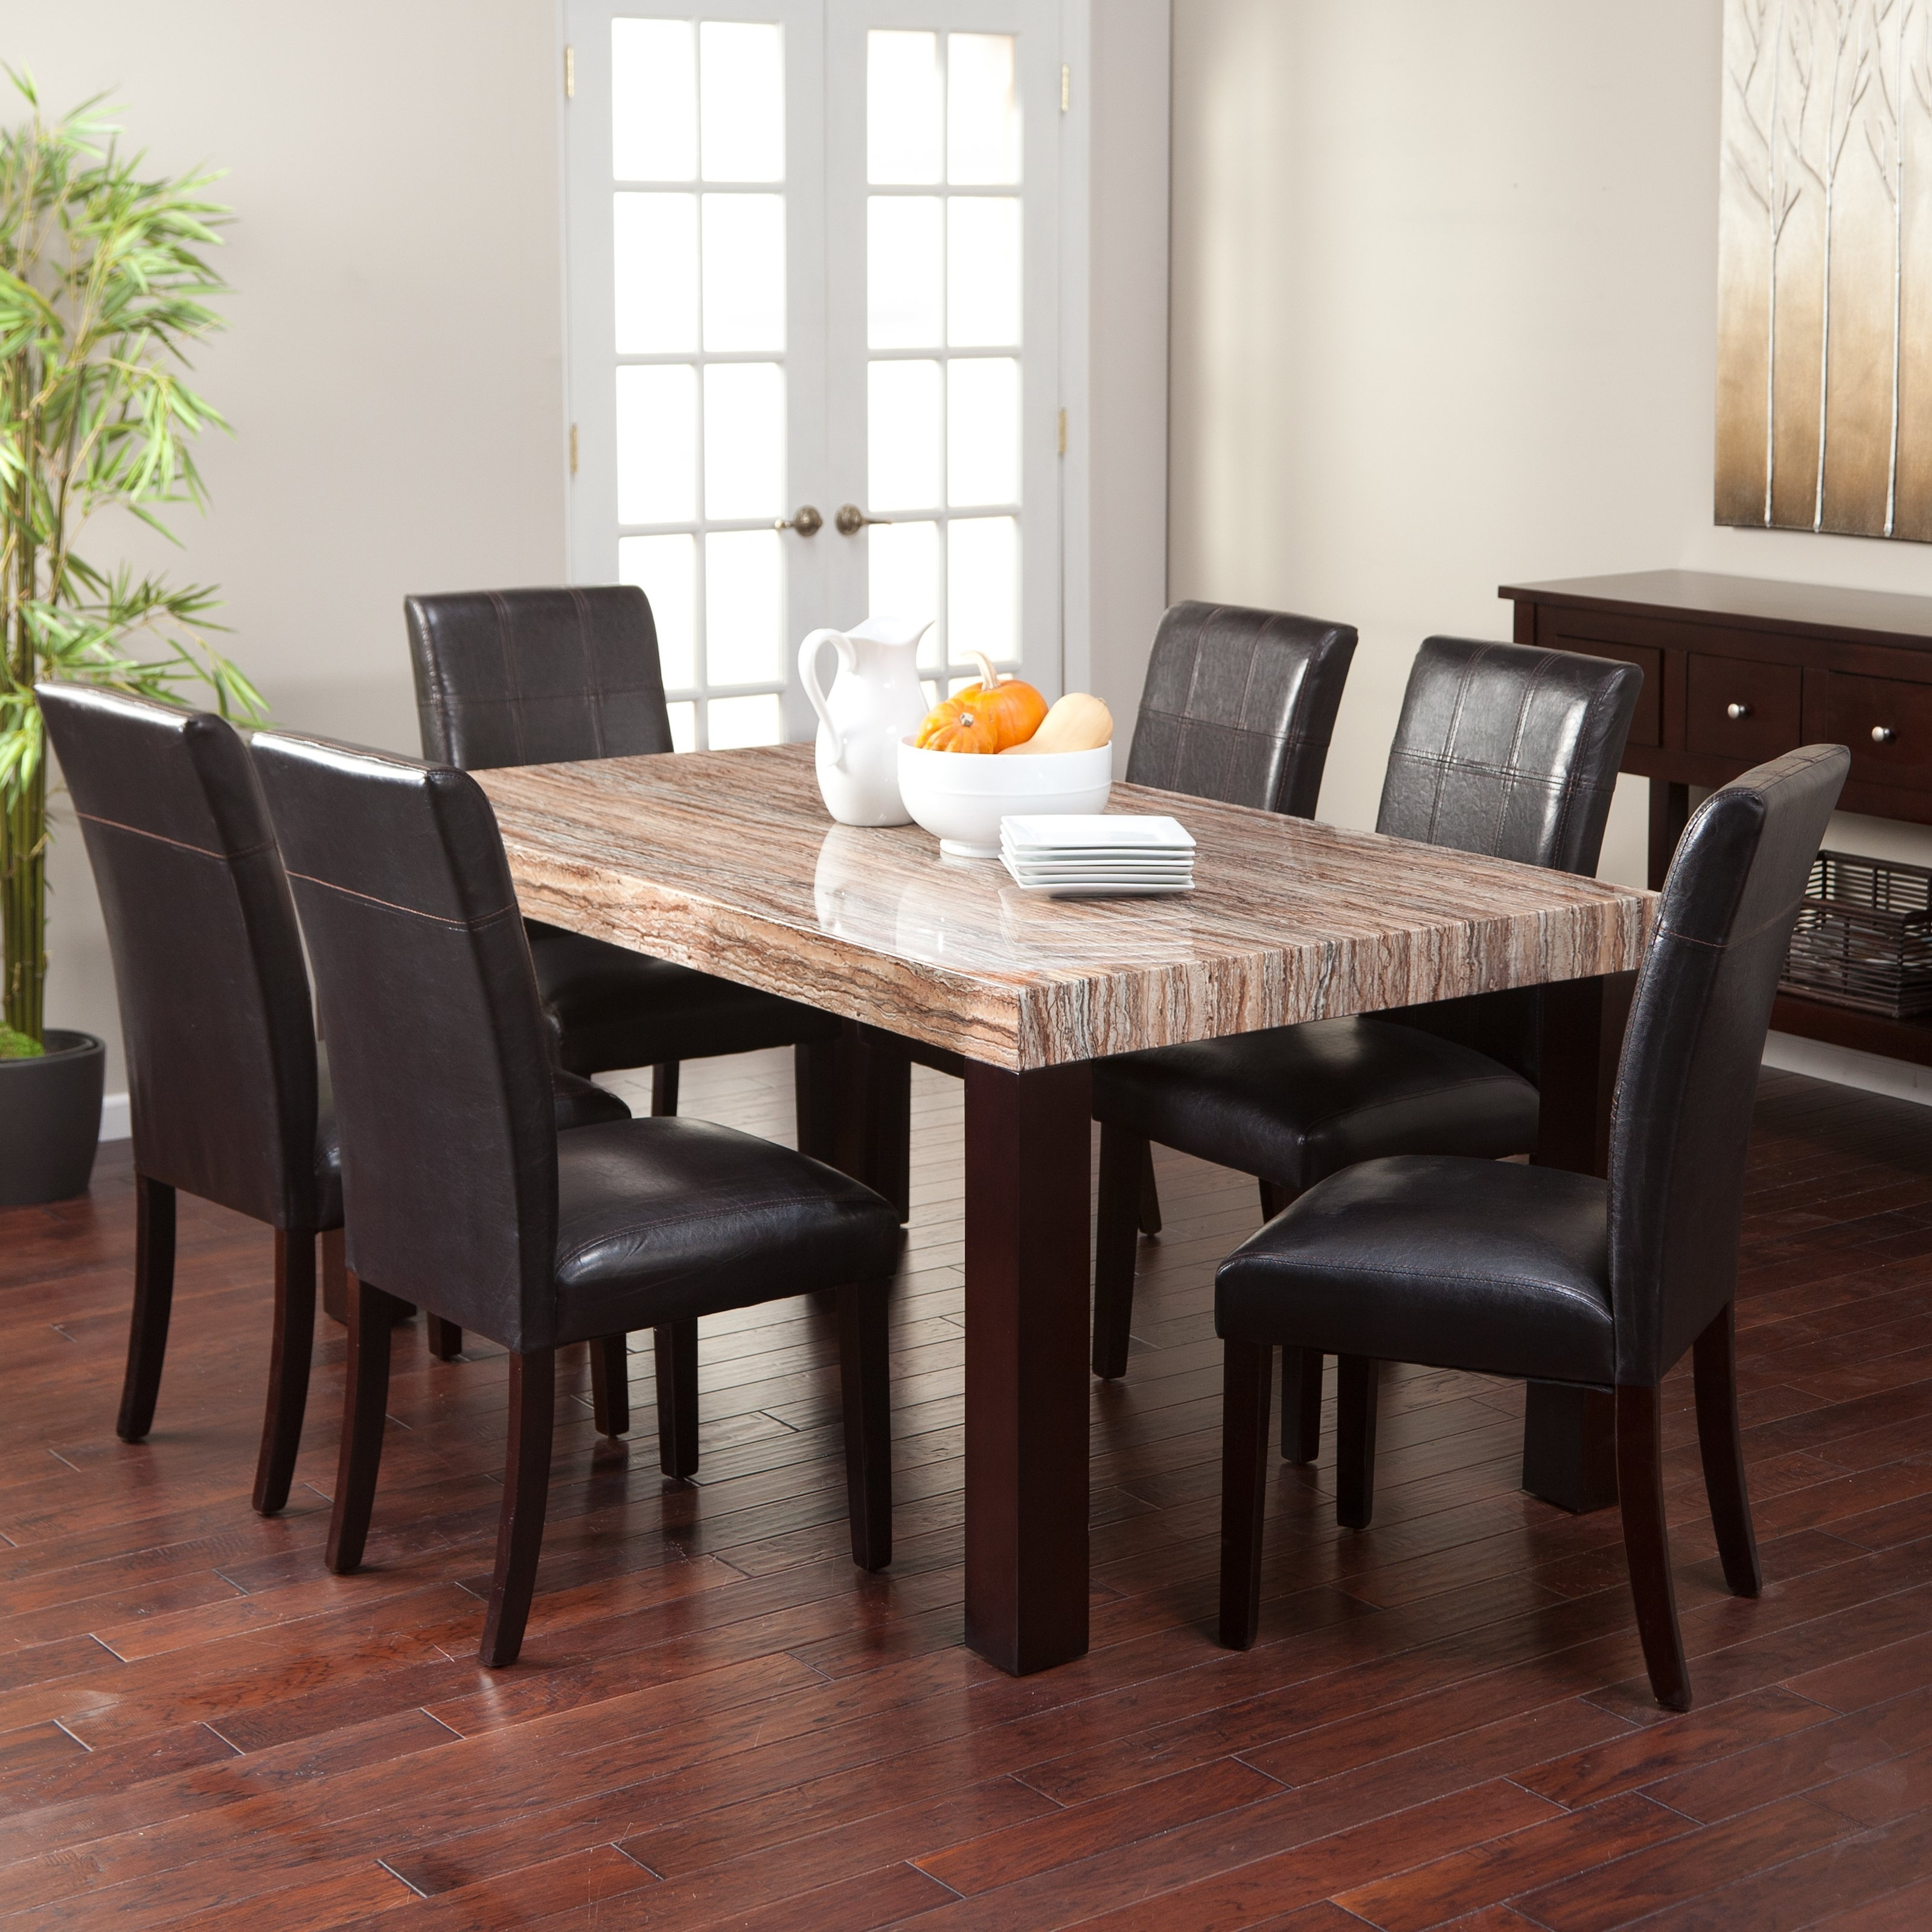 Best And Newest Dining Tables. Interesting Dining Table Sets: Breathtaking Dining Pertaining To Macie 5 Piece Round Dining Sets (Gallery 23 of 25)